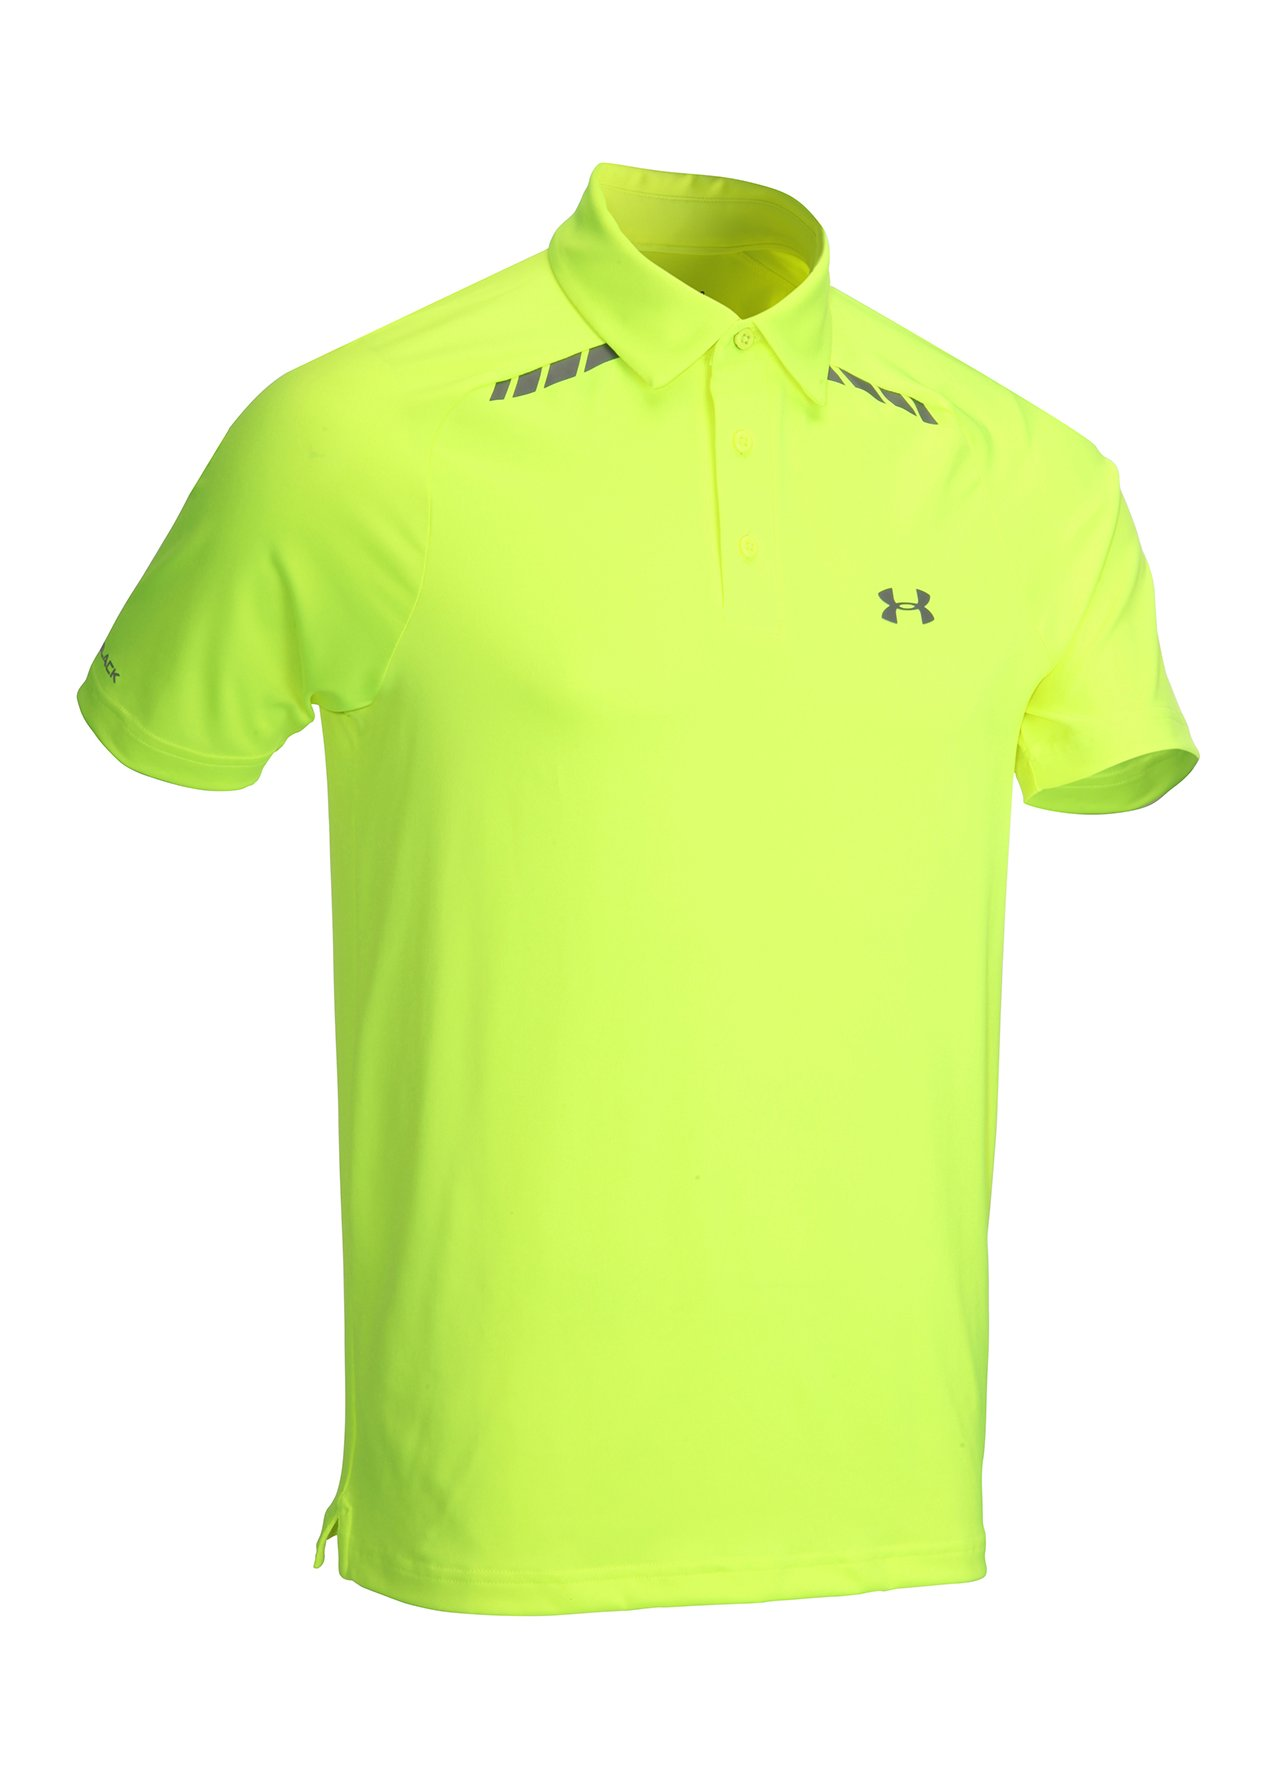 Under armour coldblack forged polo shirt for Yellow golf polo shirts